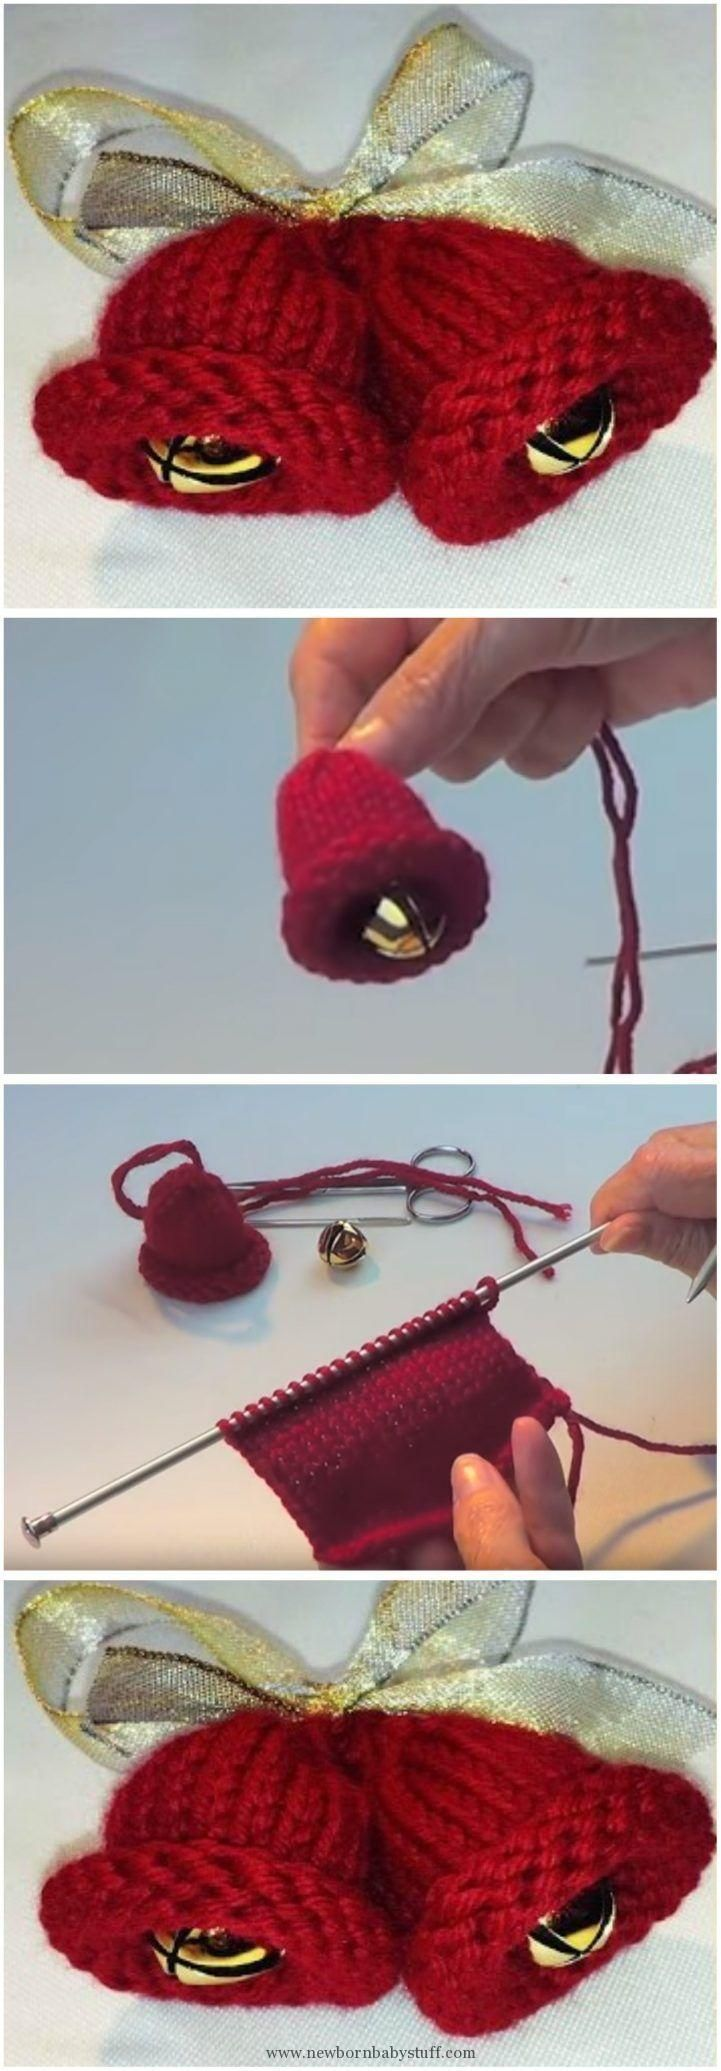 Baby Knitting Patterns How To Knit Christmas Jingle Bells...